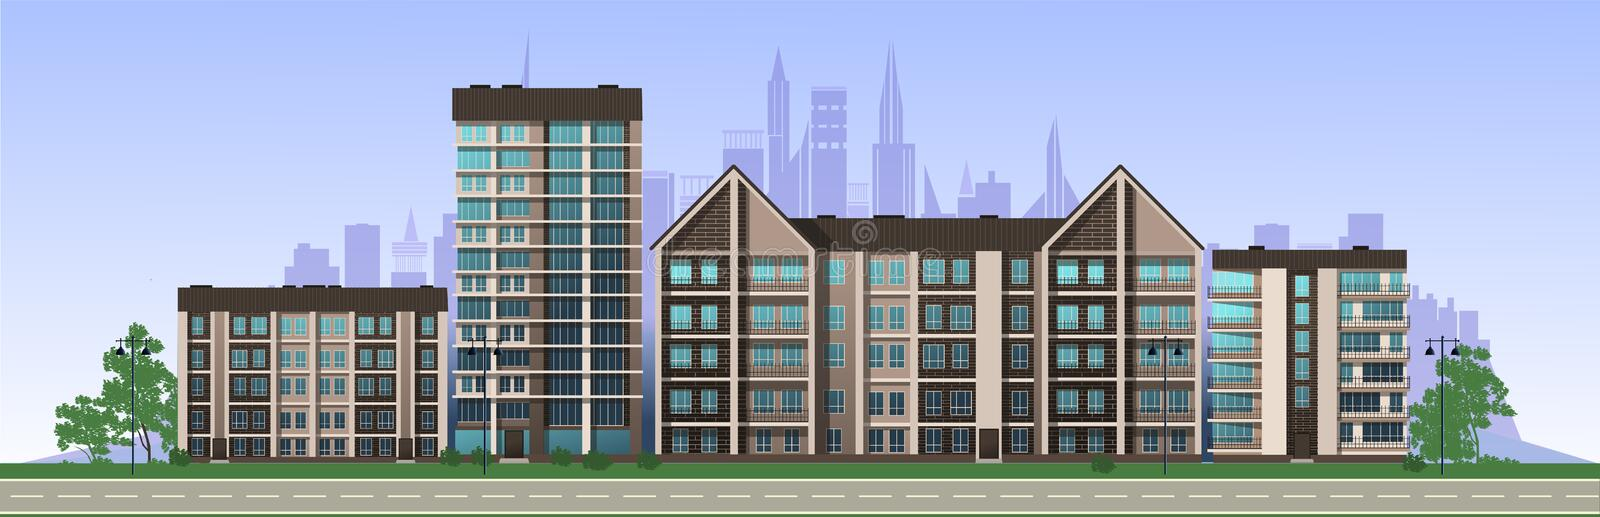 City in the afternoon. Residential buildings, cafes, school. Vector royalty free stock photo